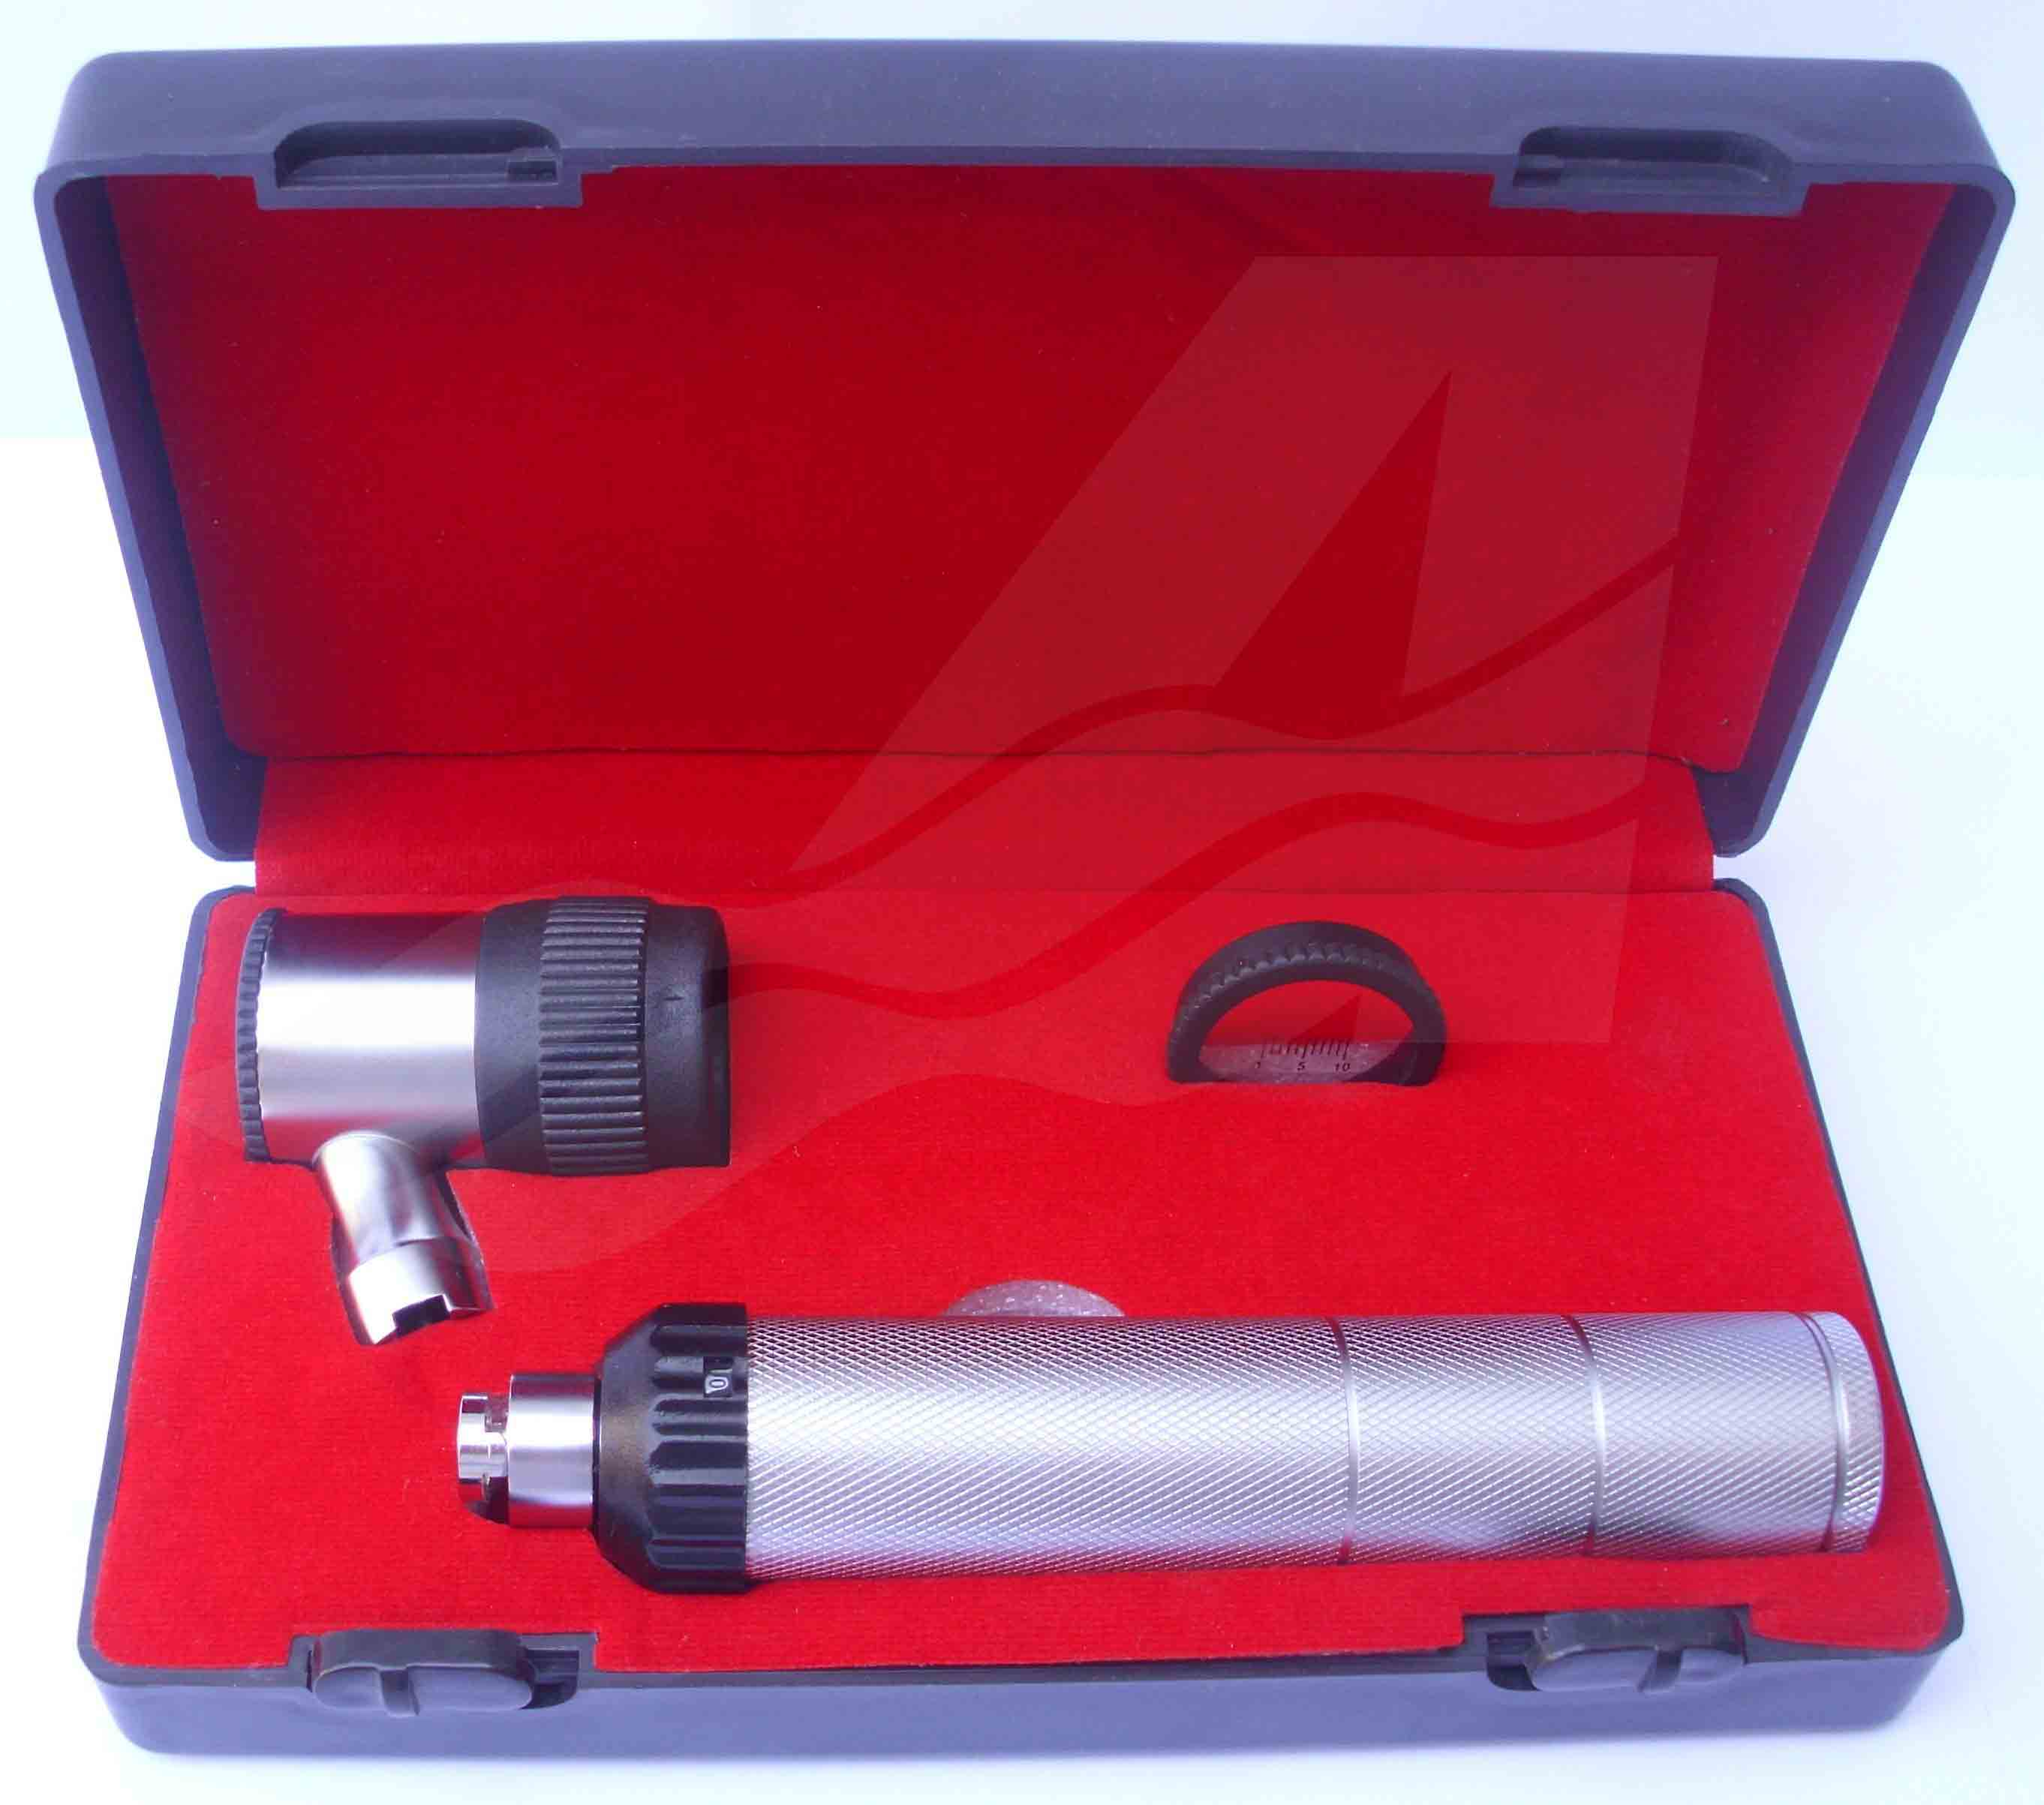 Rechargeable Dermatoscope Set with built-in battery and built-in charger